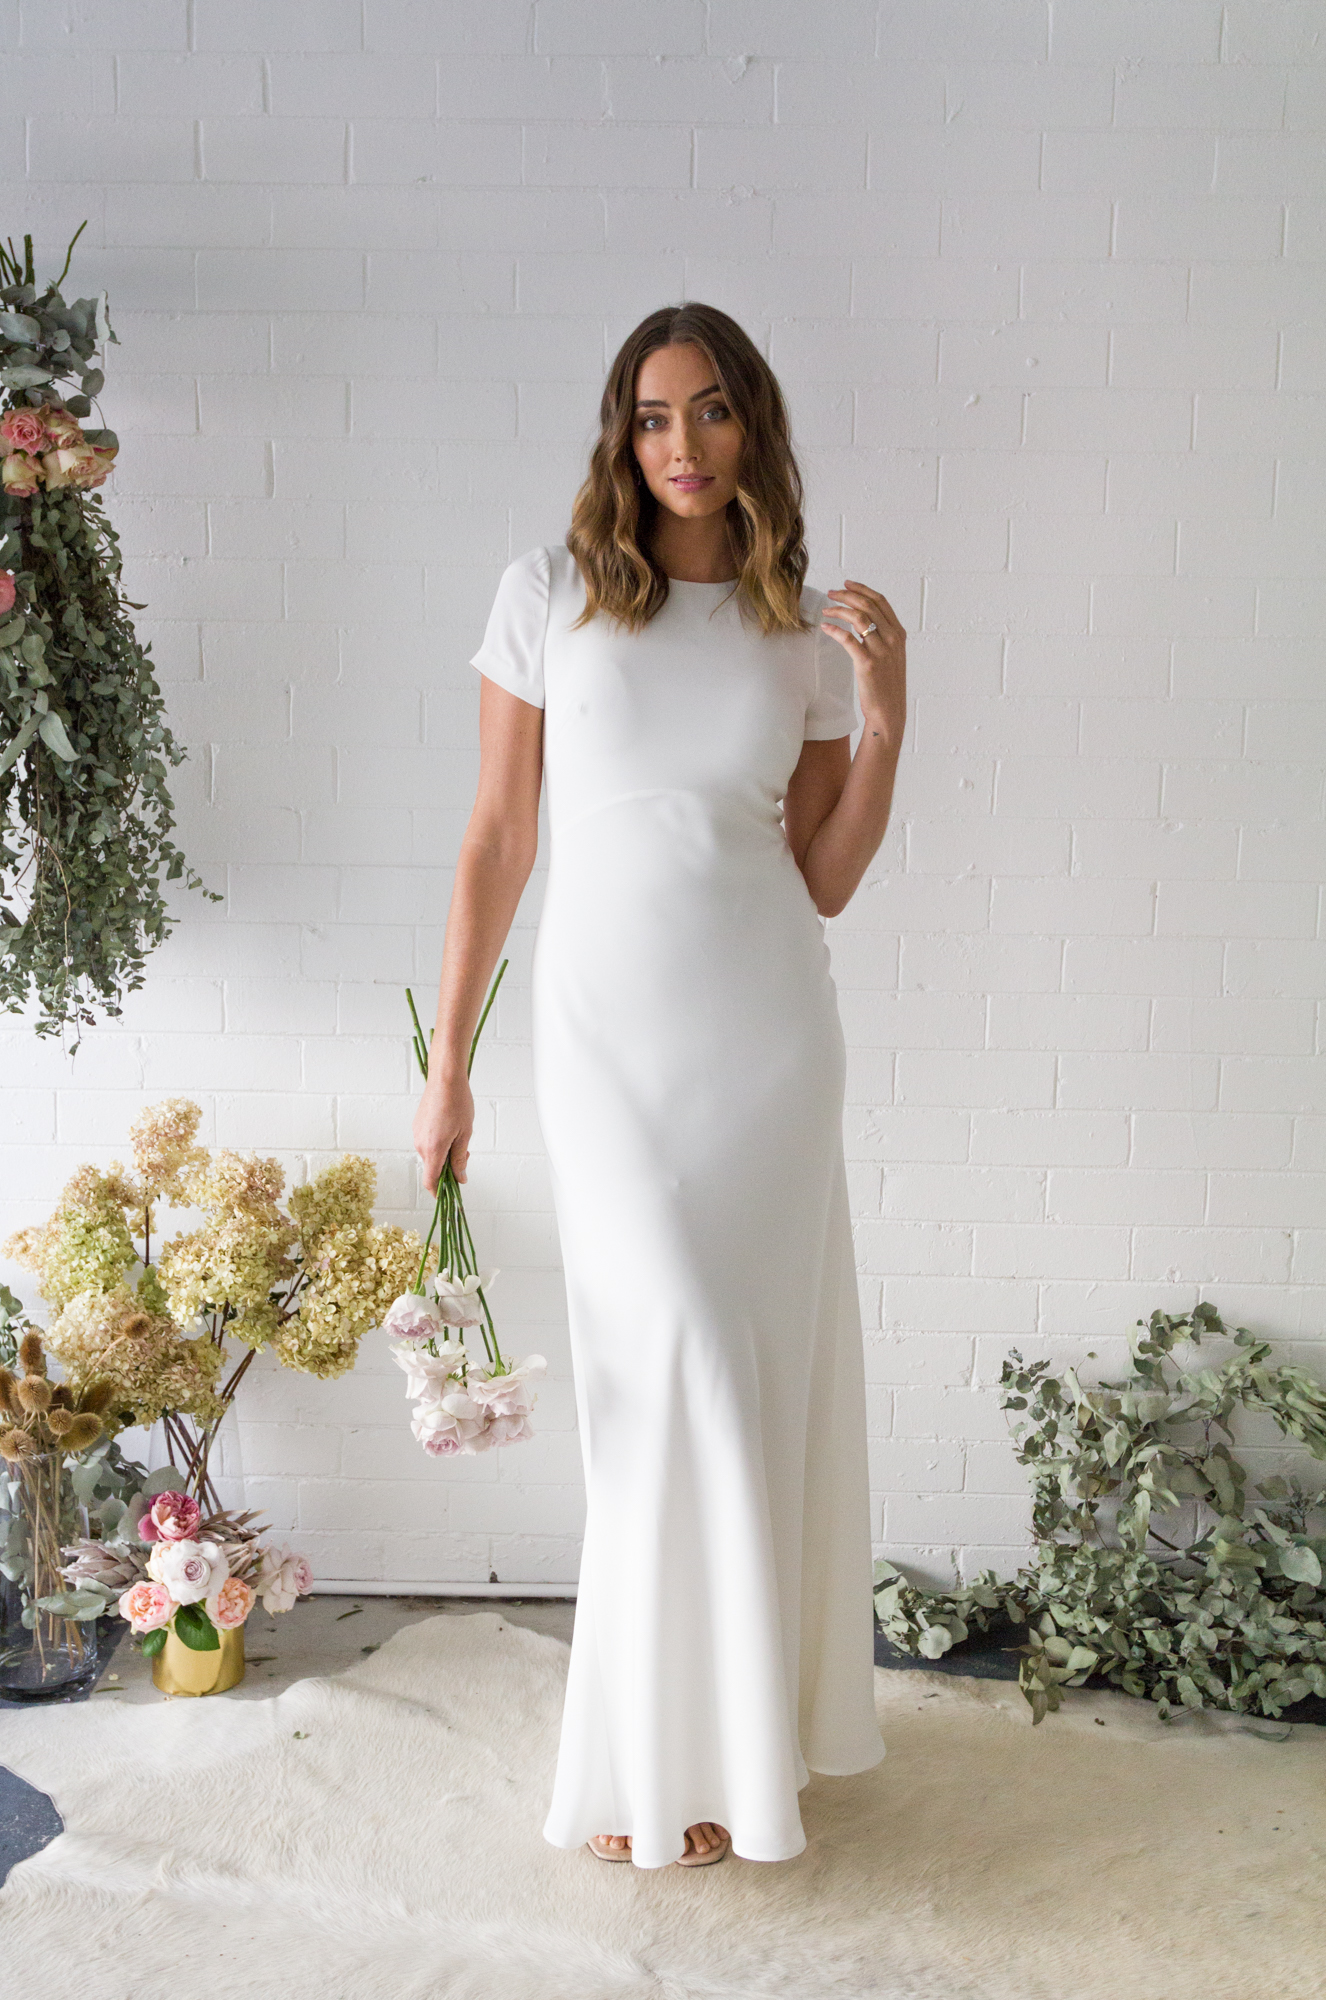 FIONA CLAIRE Tee Slip Wedding Dress | Wedding Dresses under $3,000 | LOVE FIND CO. Bridal Dress Directory